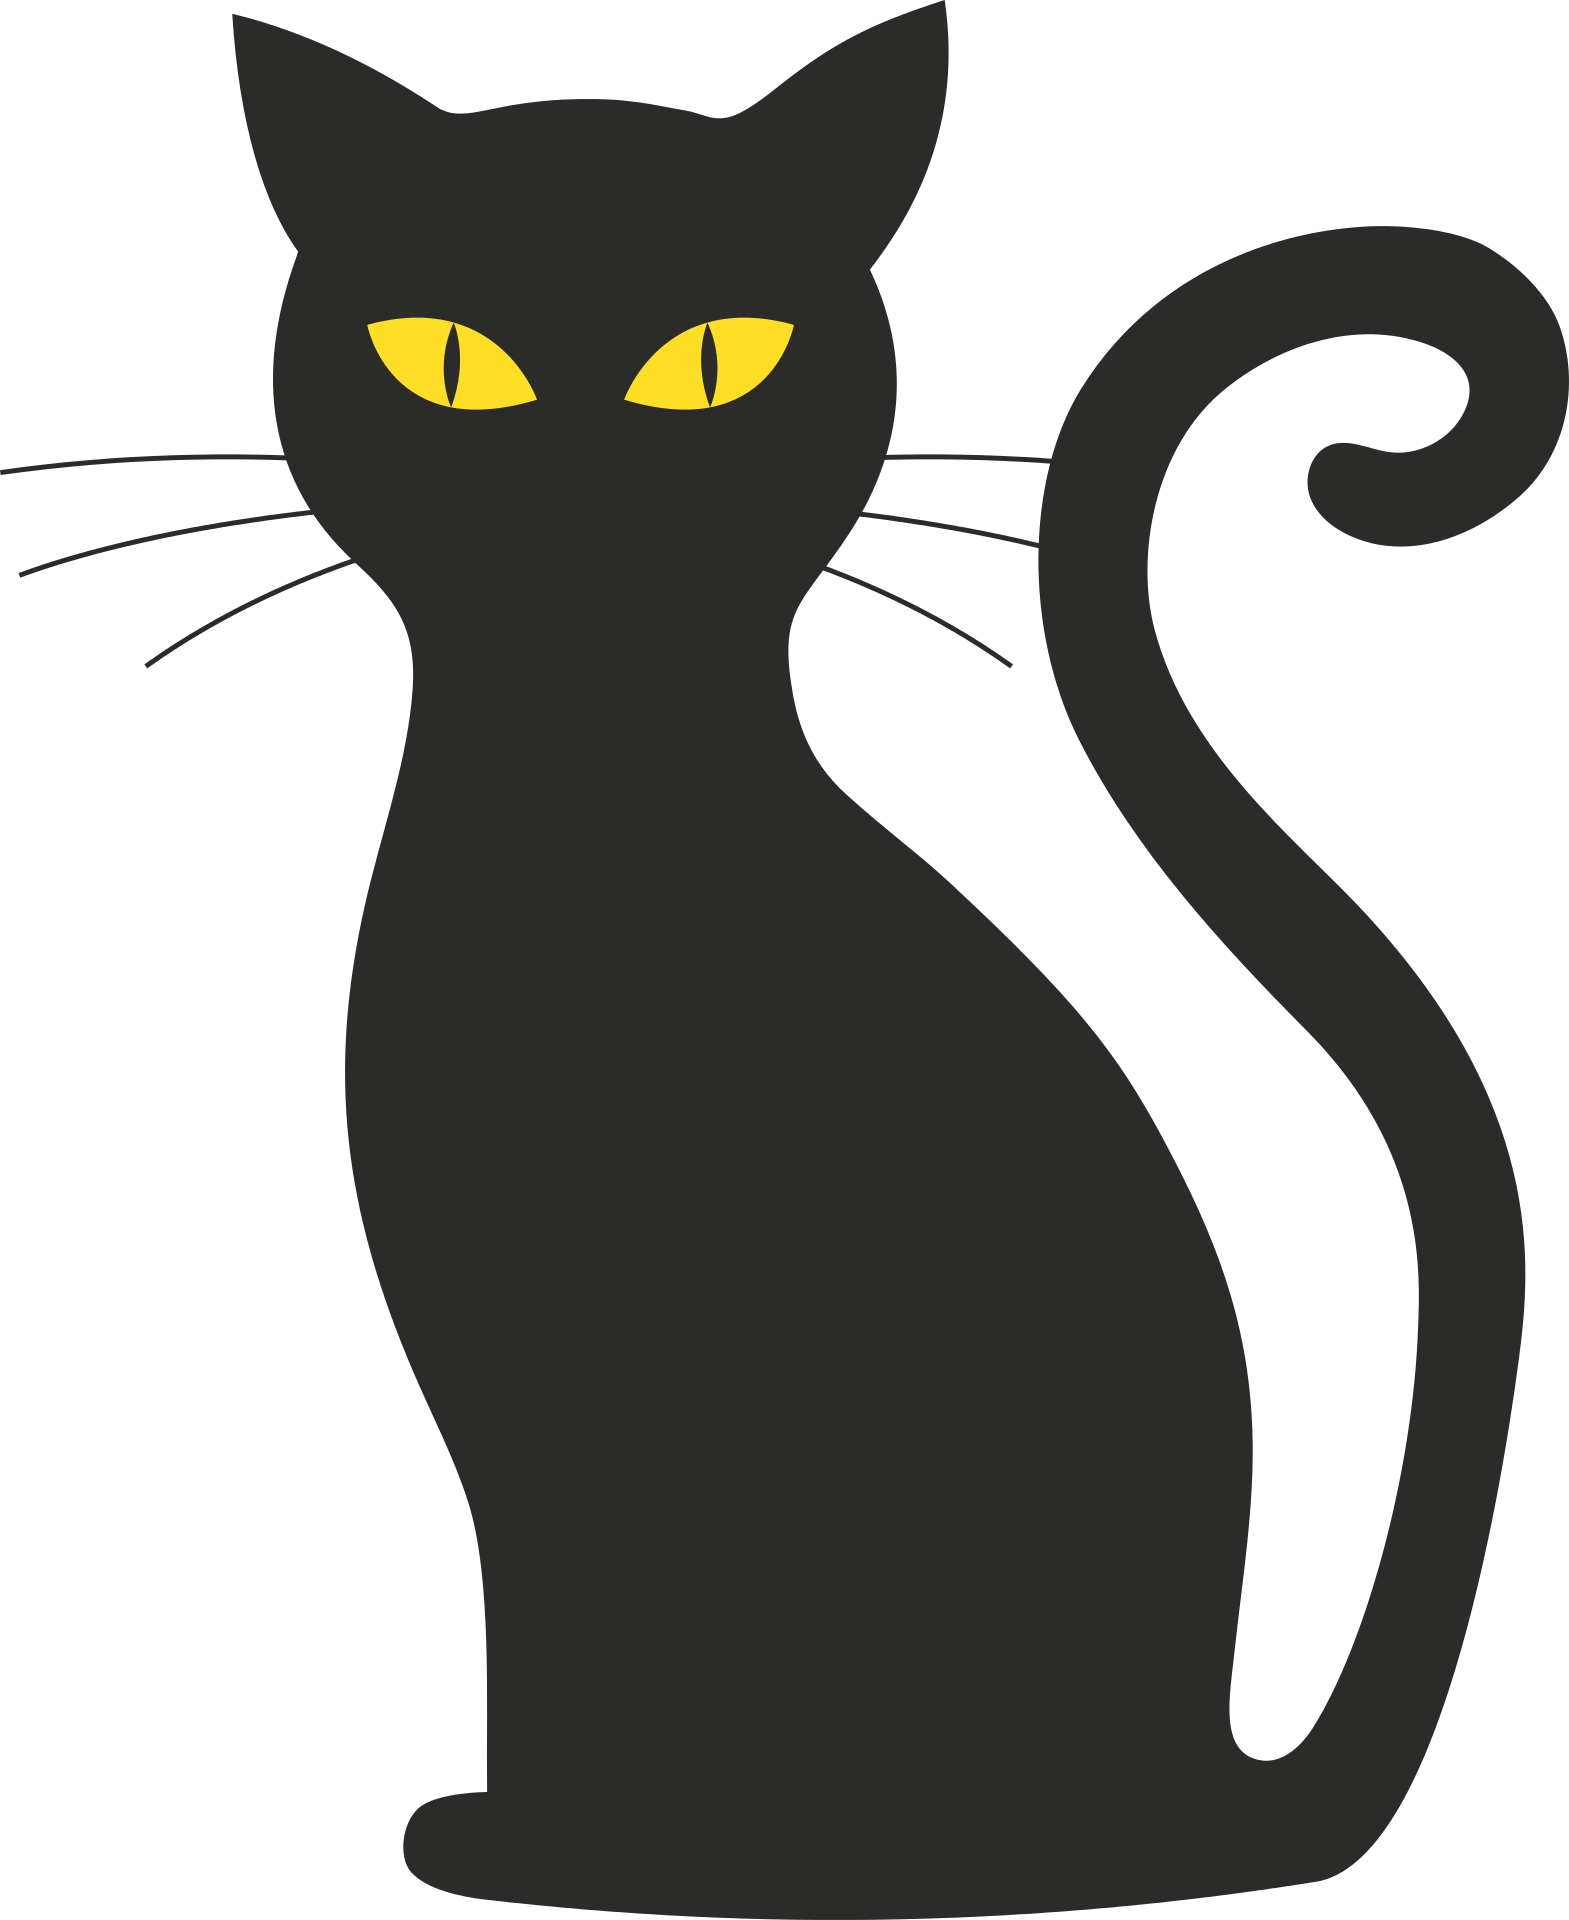 Feeding the cat clipart graphic library Szablon kota png czarny / Cat silhouette / public domain | Kot ... graphic library